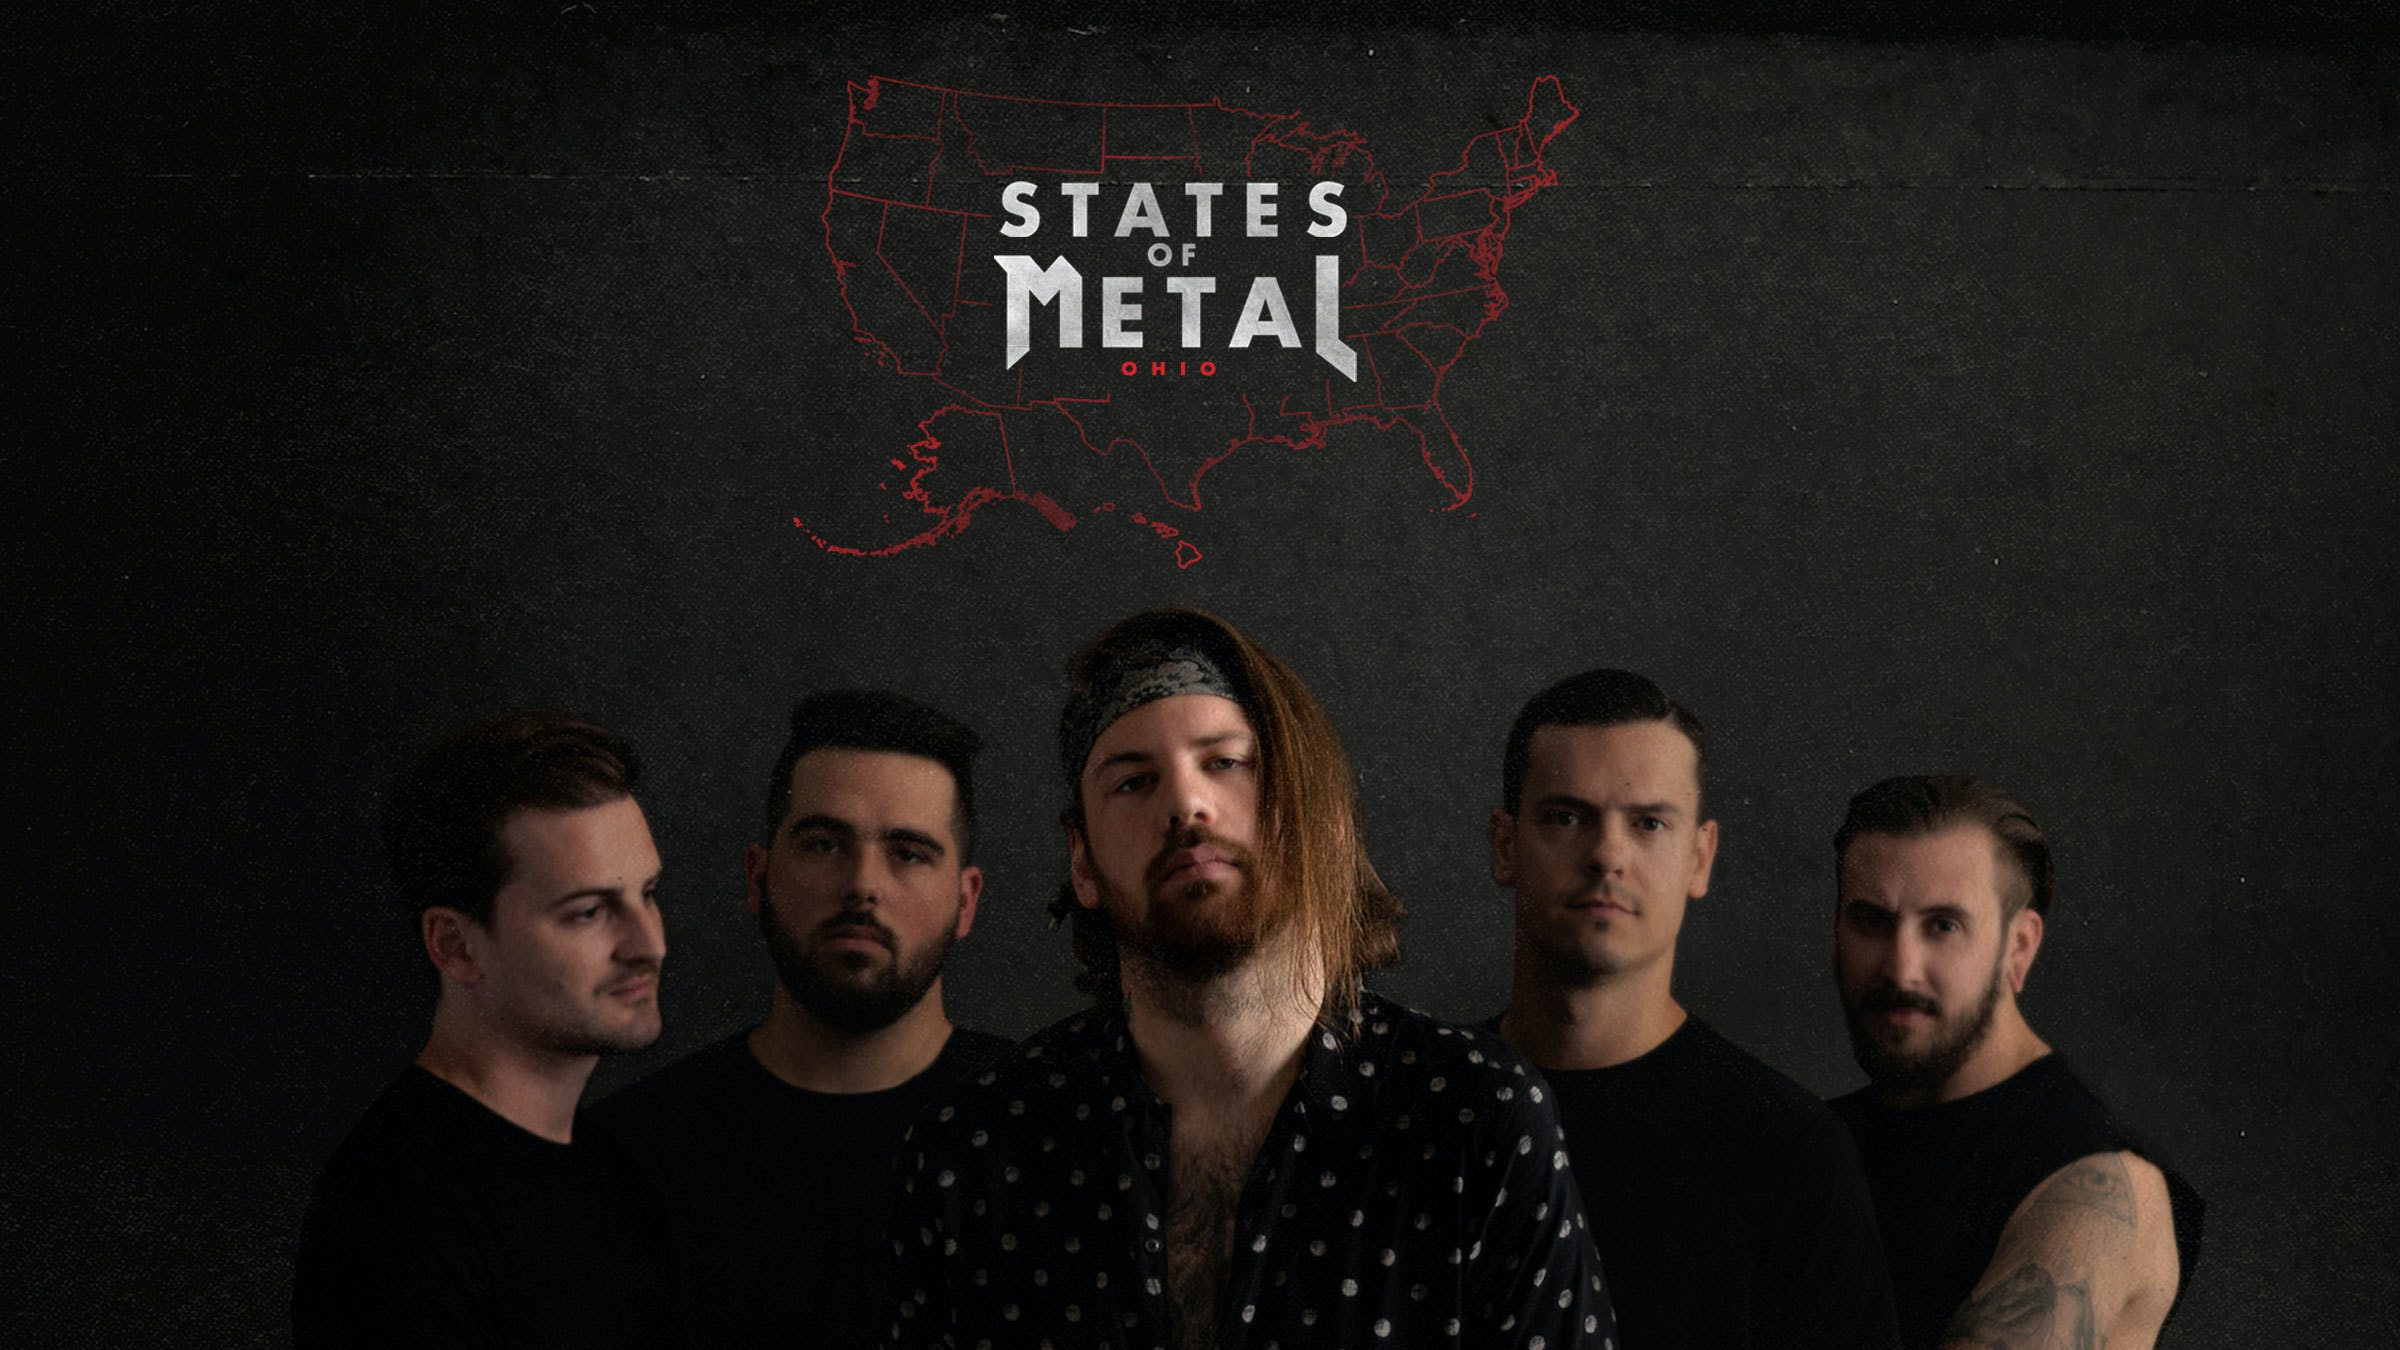 States Of Metal: Ohio Thrives On Grit And Determination